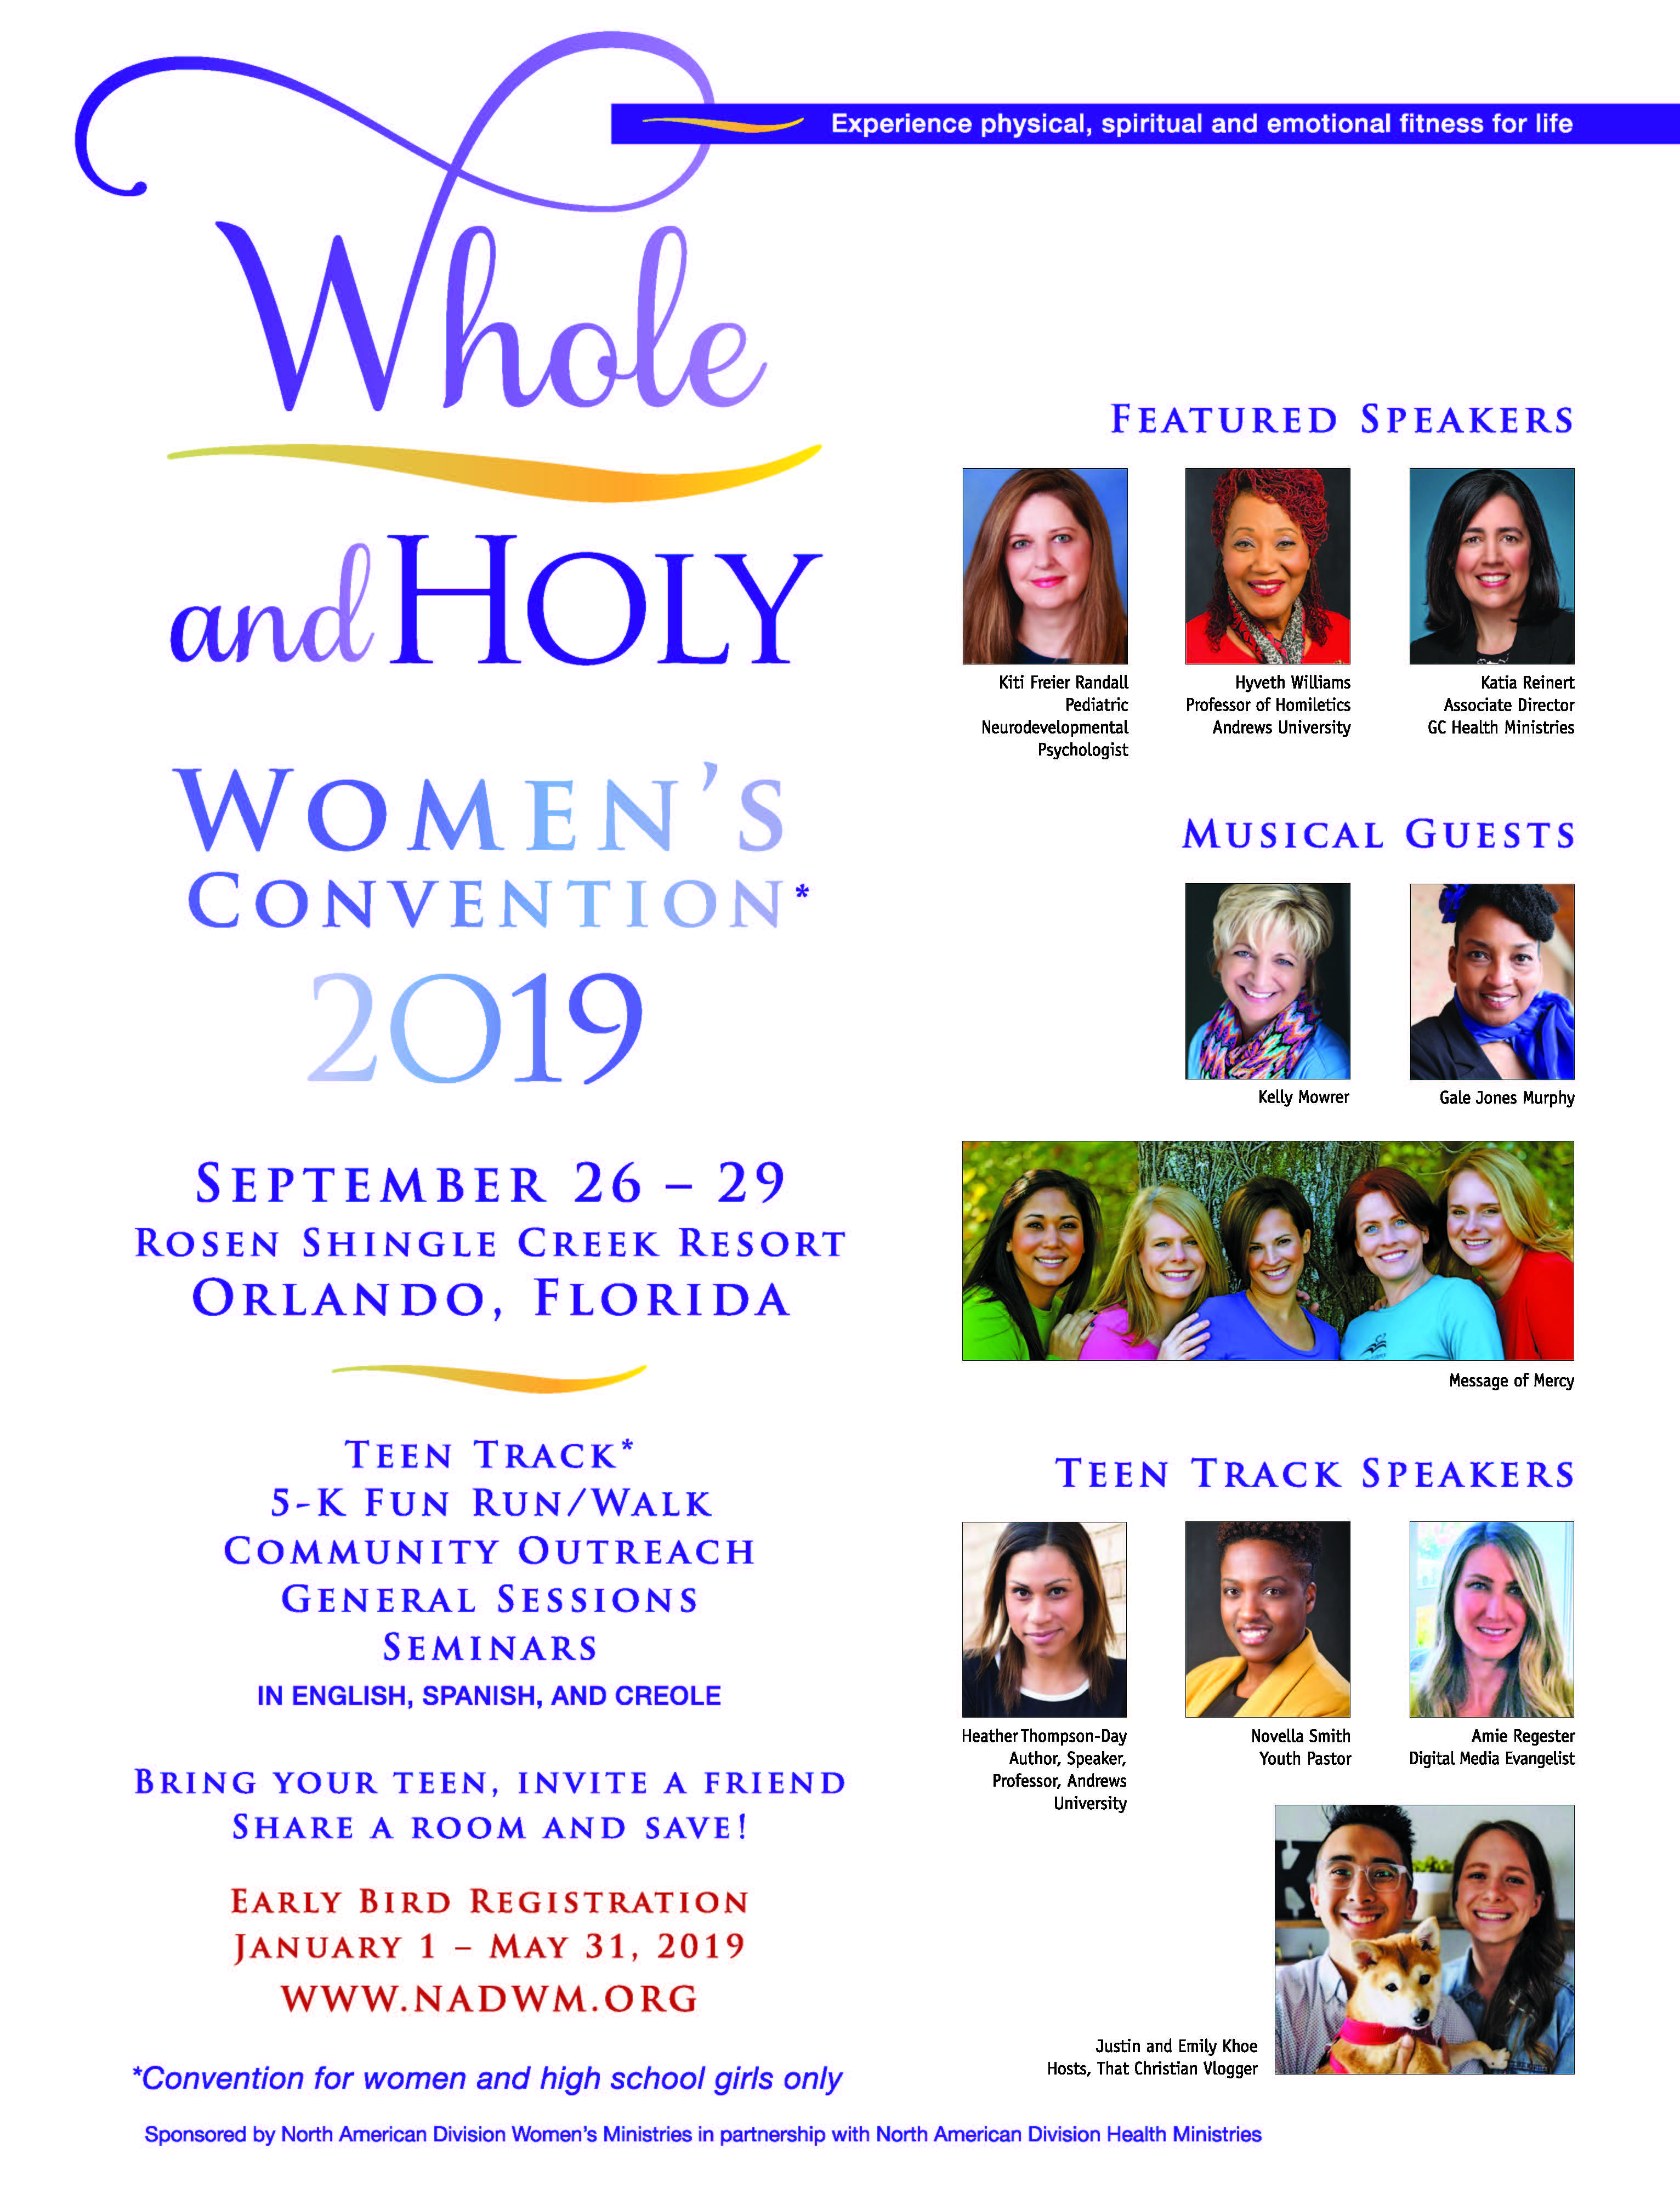 Whole and Holy Women's Convention